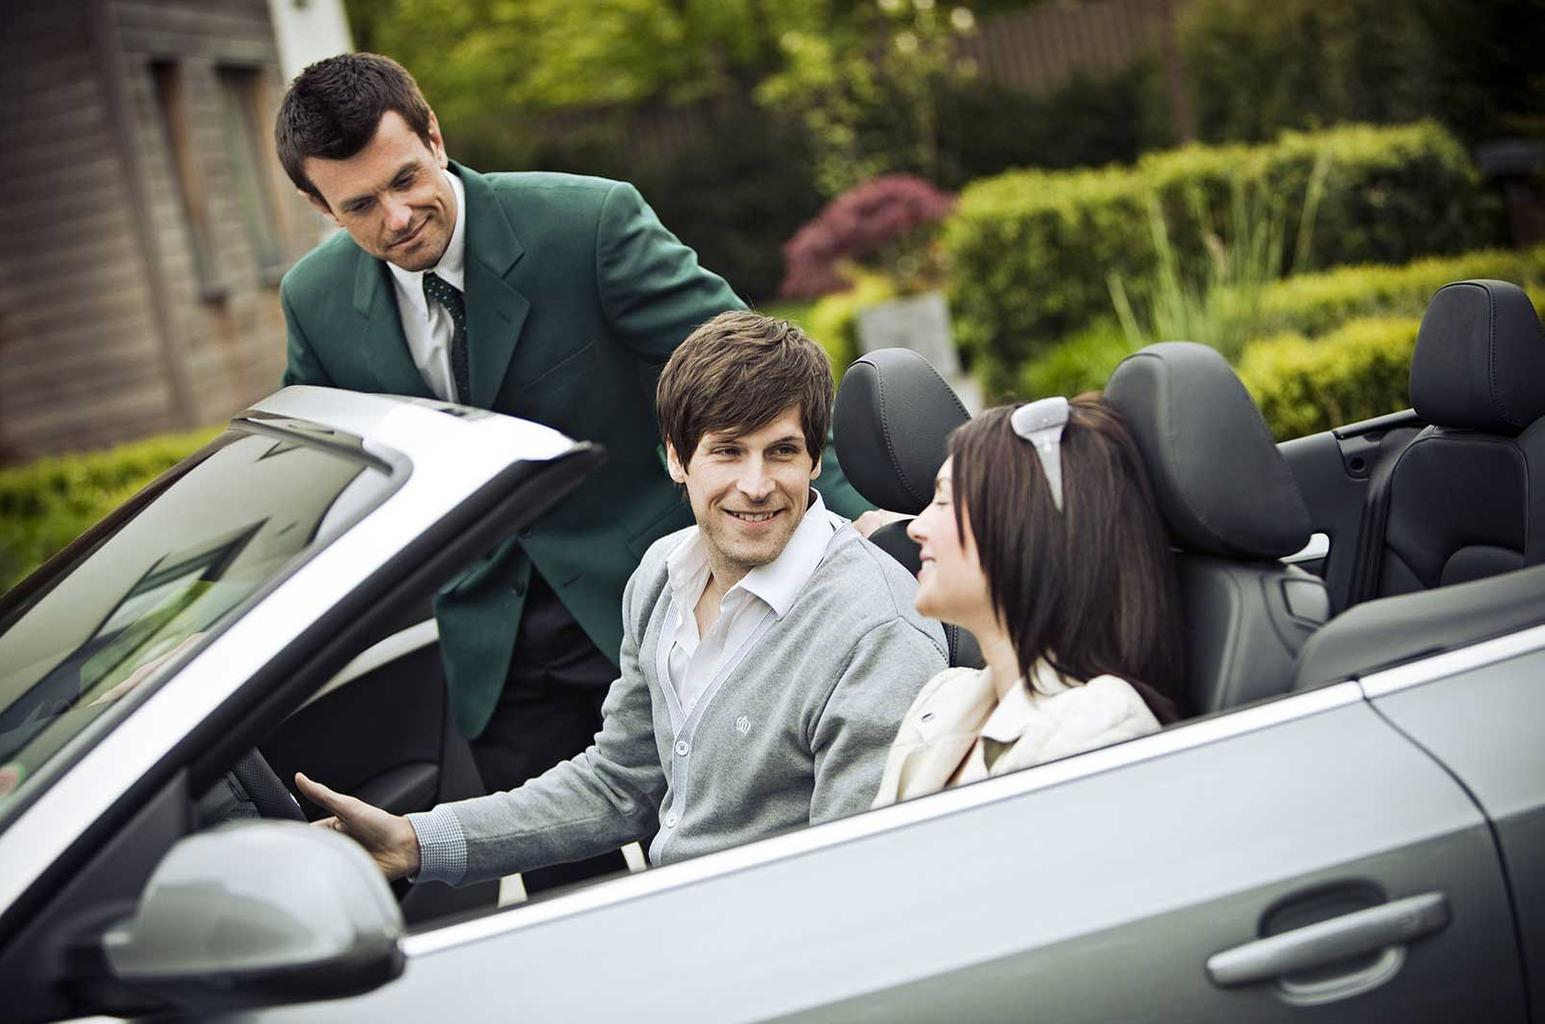 Holiday car hire tips - don't get ripped off